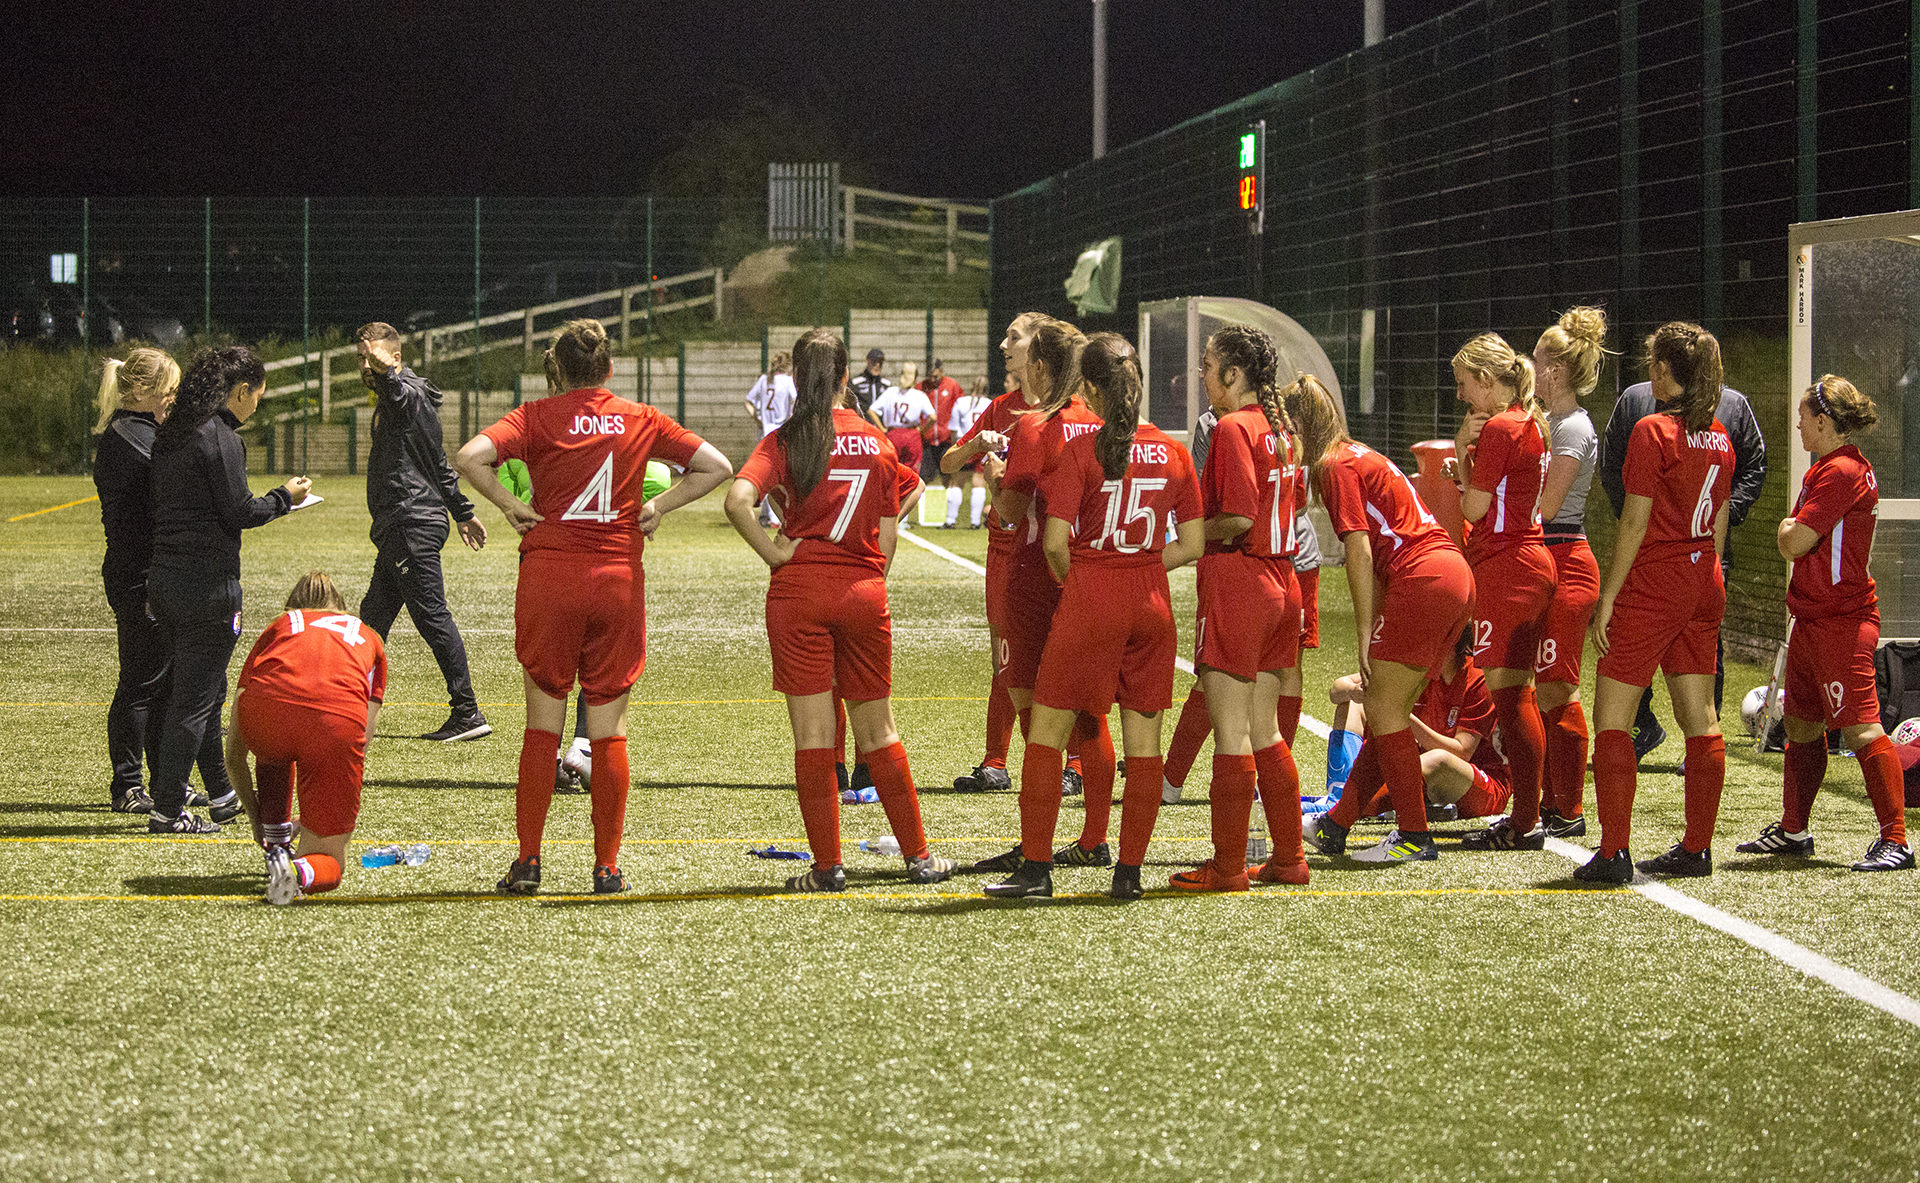 Nomads Ladies' inaugural game a resounding success